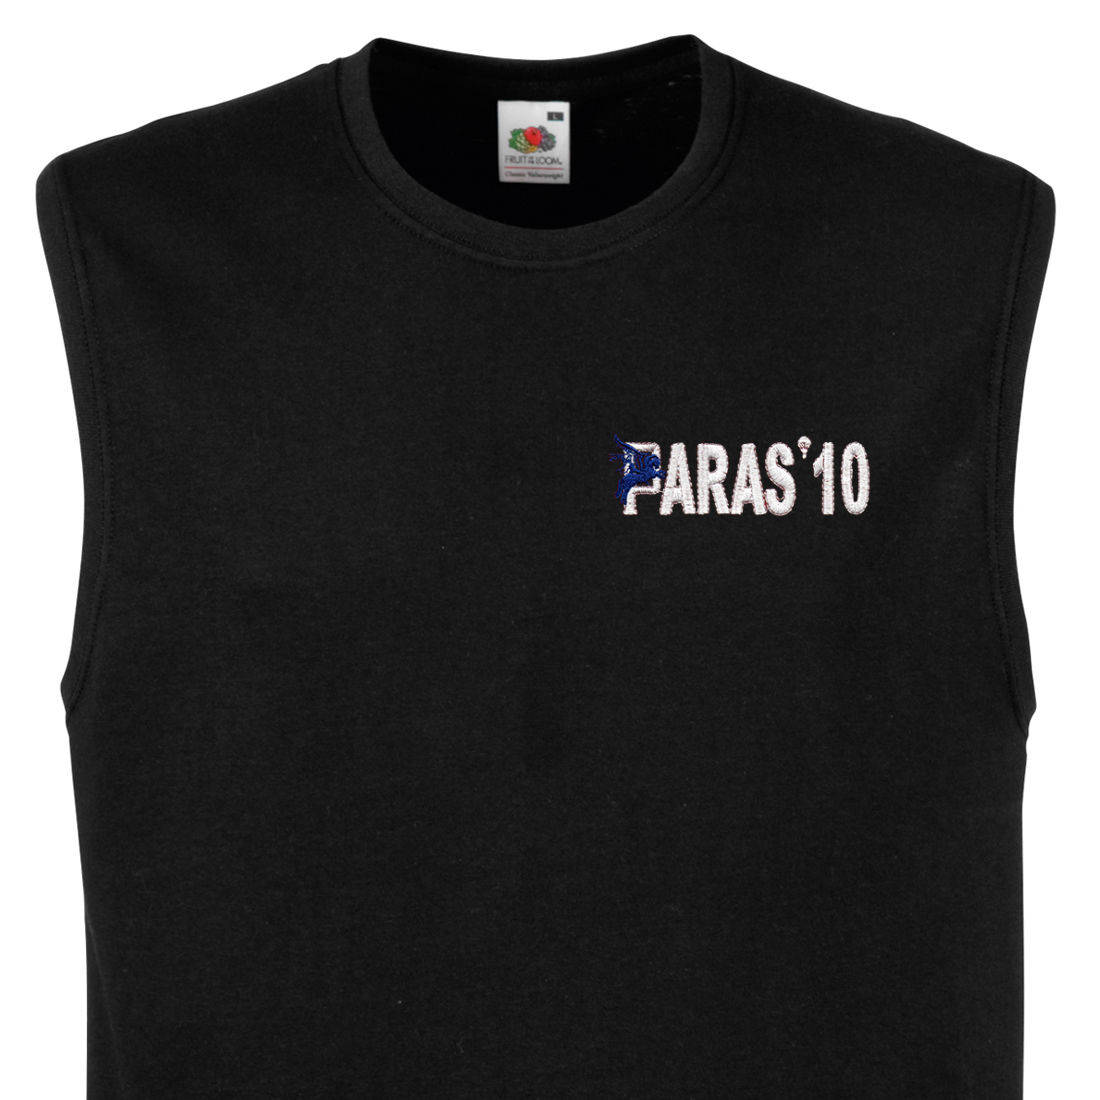 Muscle Tee - Black - Paras 10